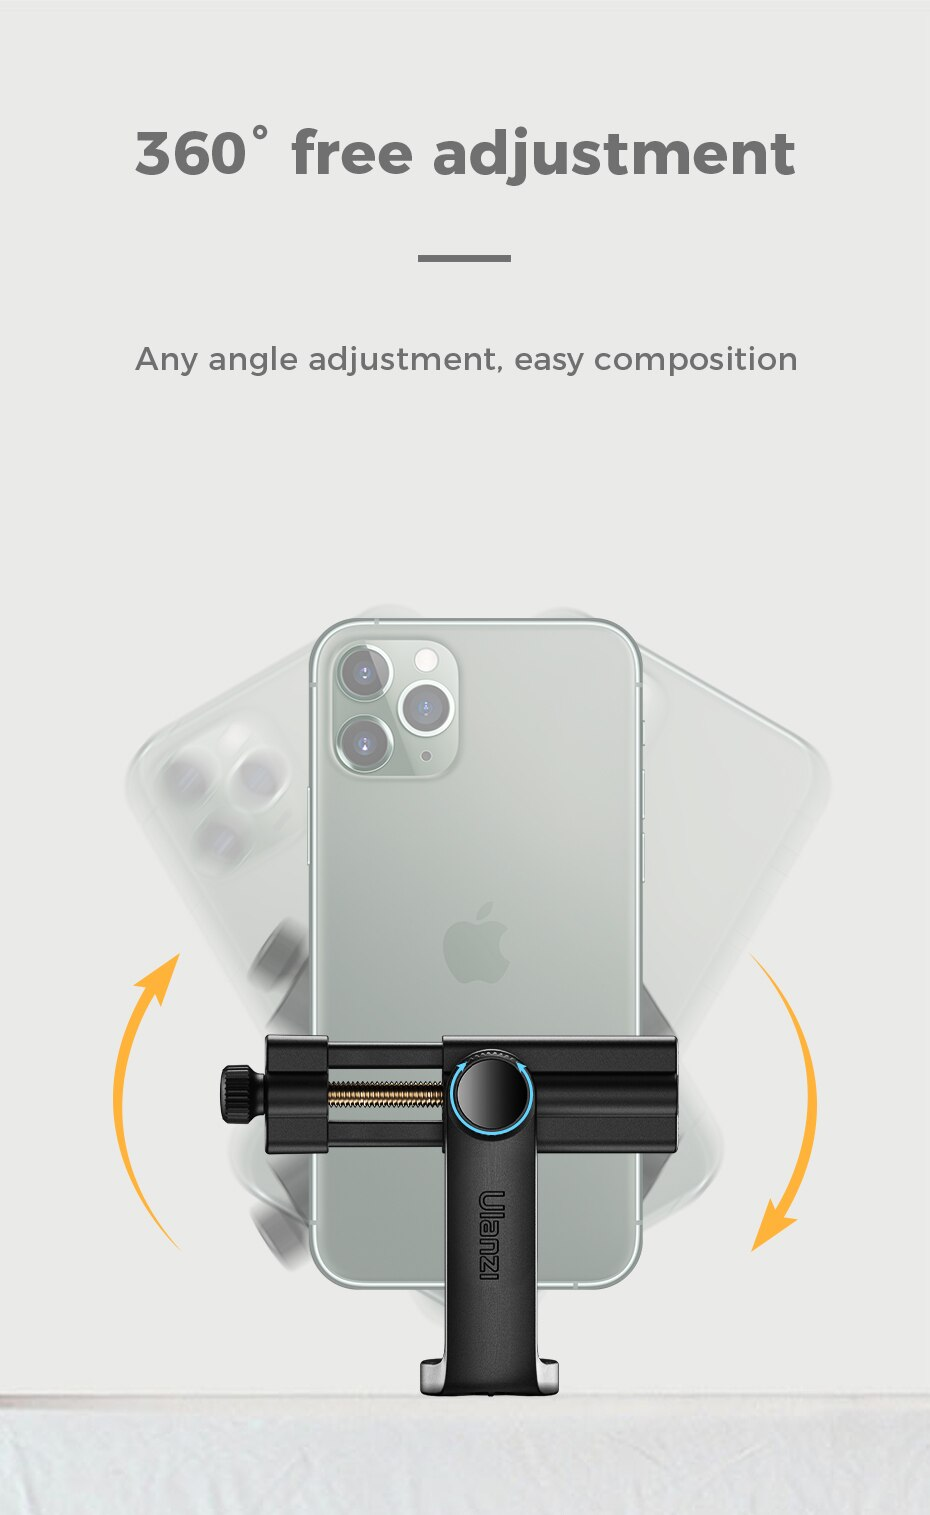 H44589e23bd284766801e9645053a43221 - Ulanzi ST-17 Universal Smartphone Clip Mount Holder Cold Shoe Vlog Tripod Mount Vertical Shooting for Huawei iPhone Android